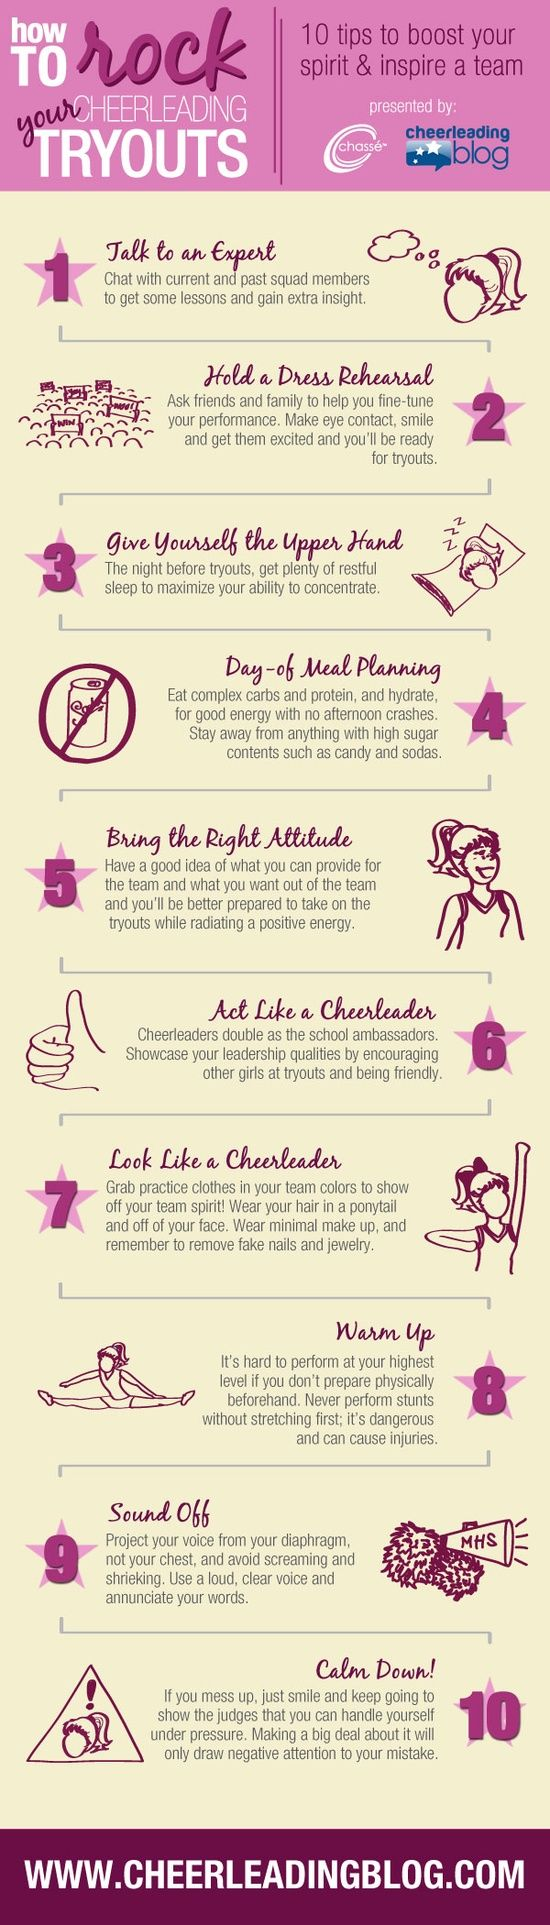 Cheer Infograph How To Rock Your Cheerleading Tryouts